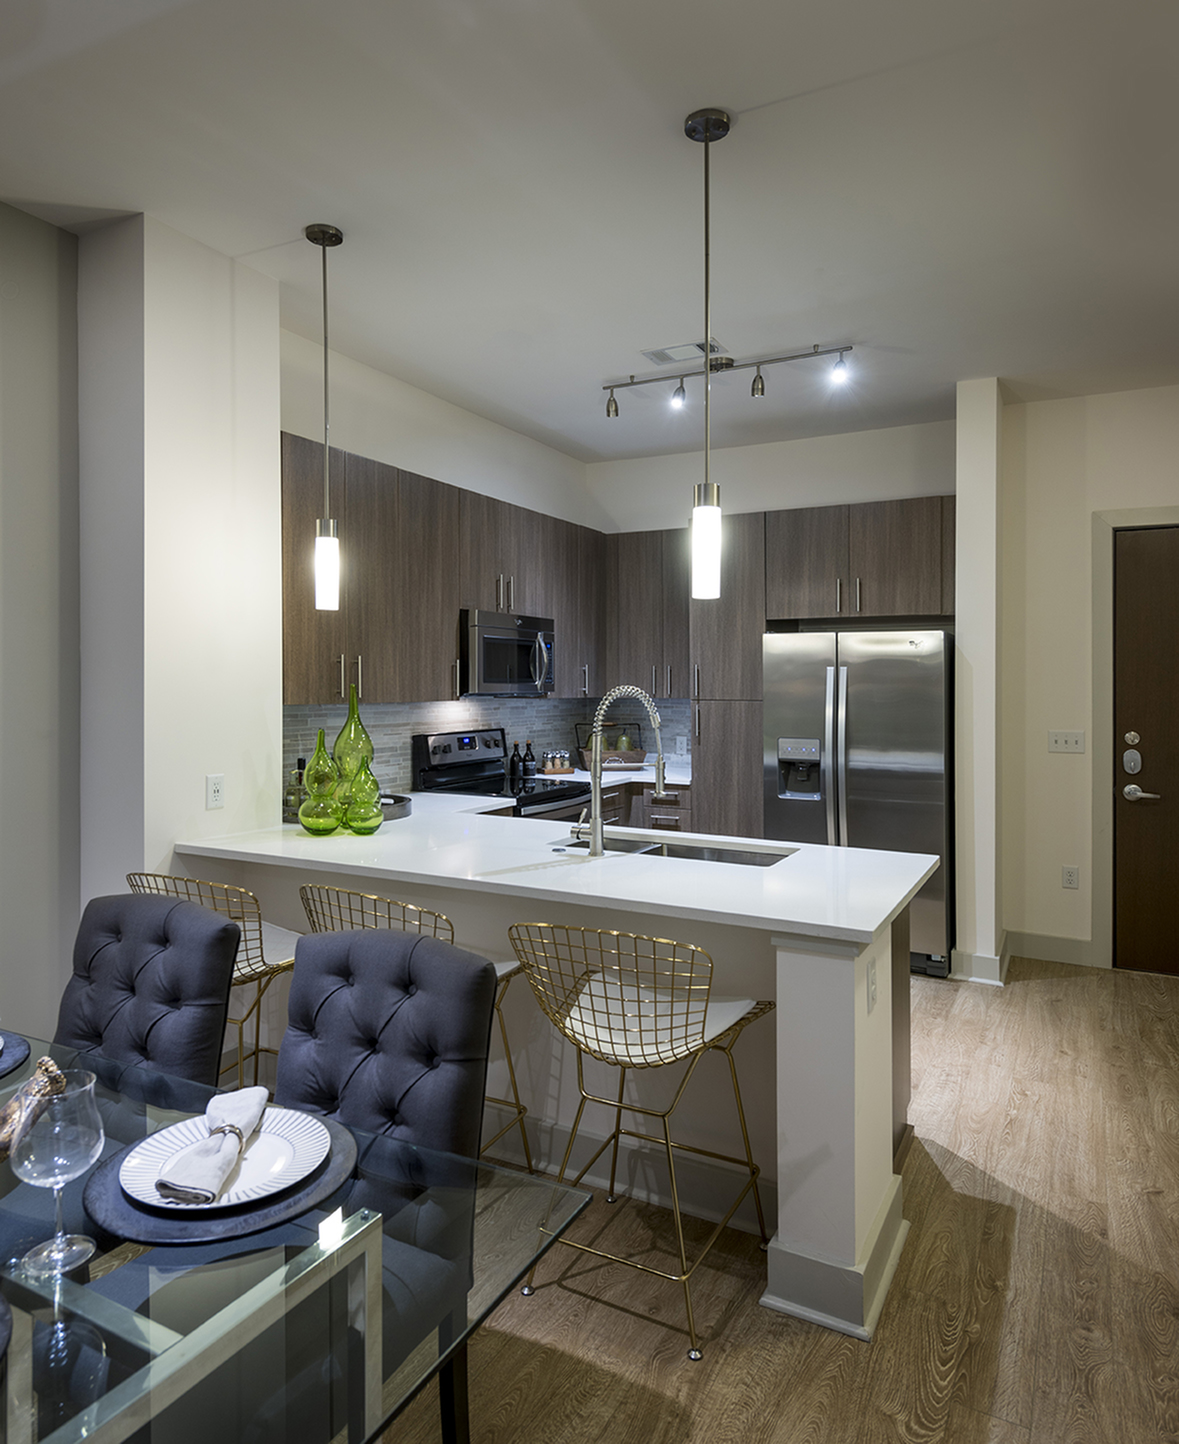 Image of Gourmet chef kitchen with stainless steel appliances for Hanover Alewife